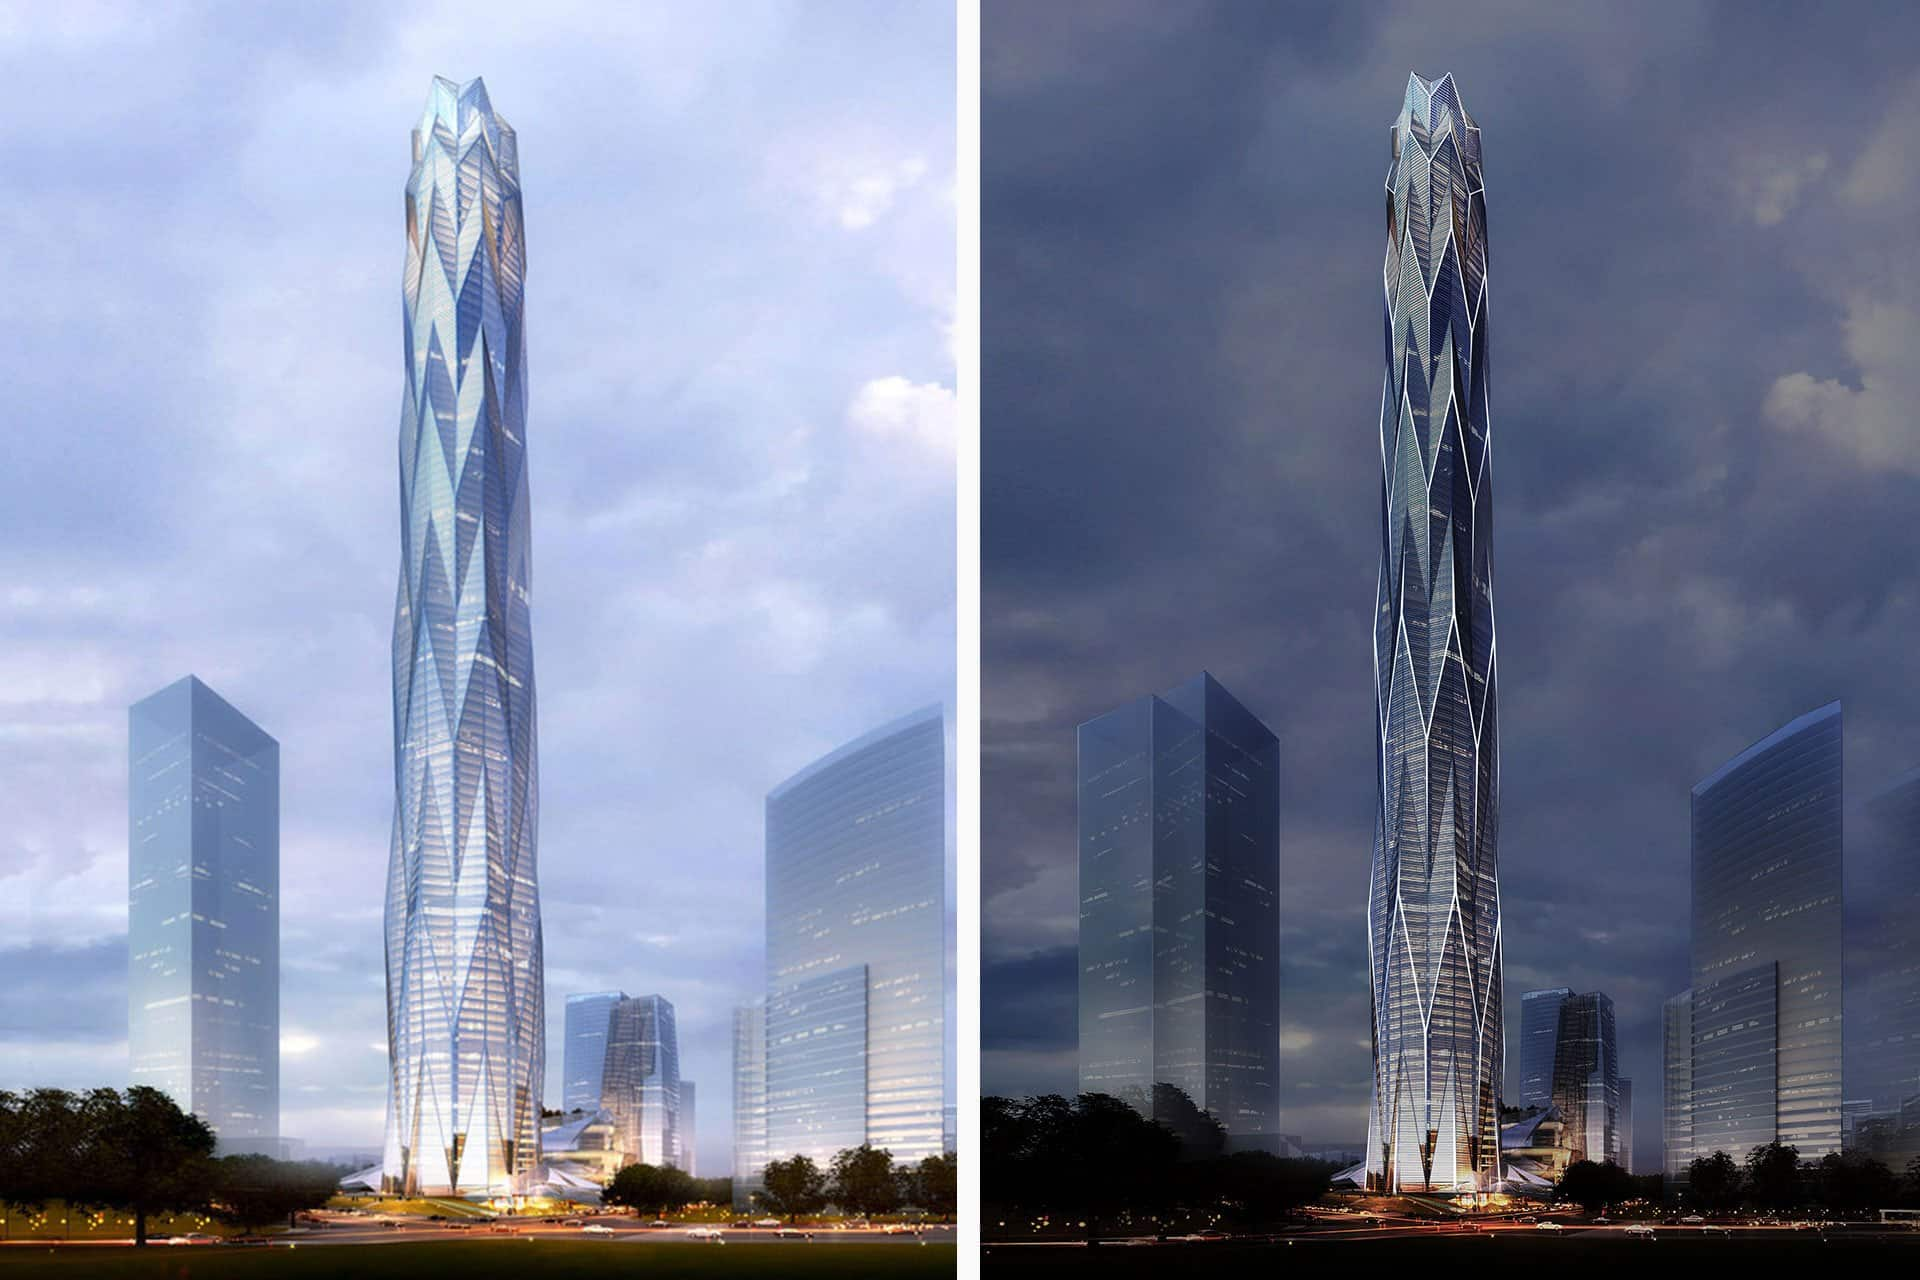 Chengdu Greenland Tower China architectural design lighting Office For Visual Interaction building image